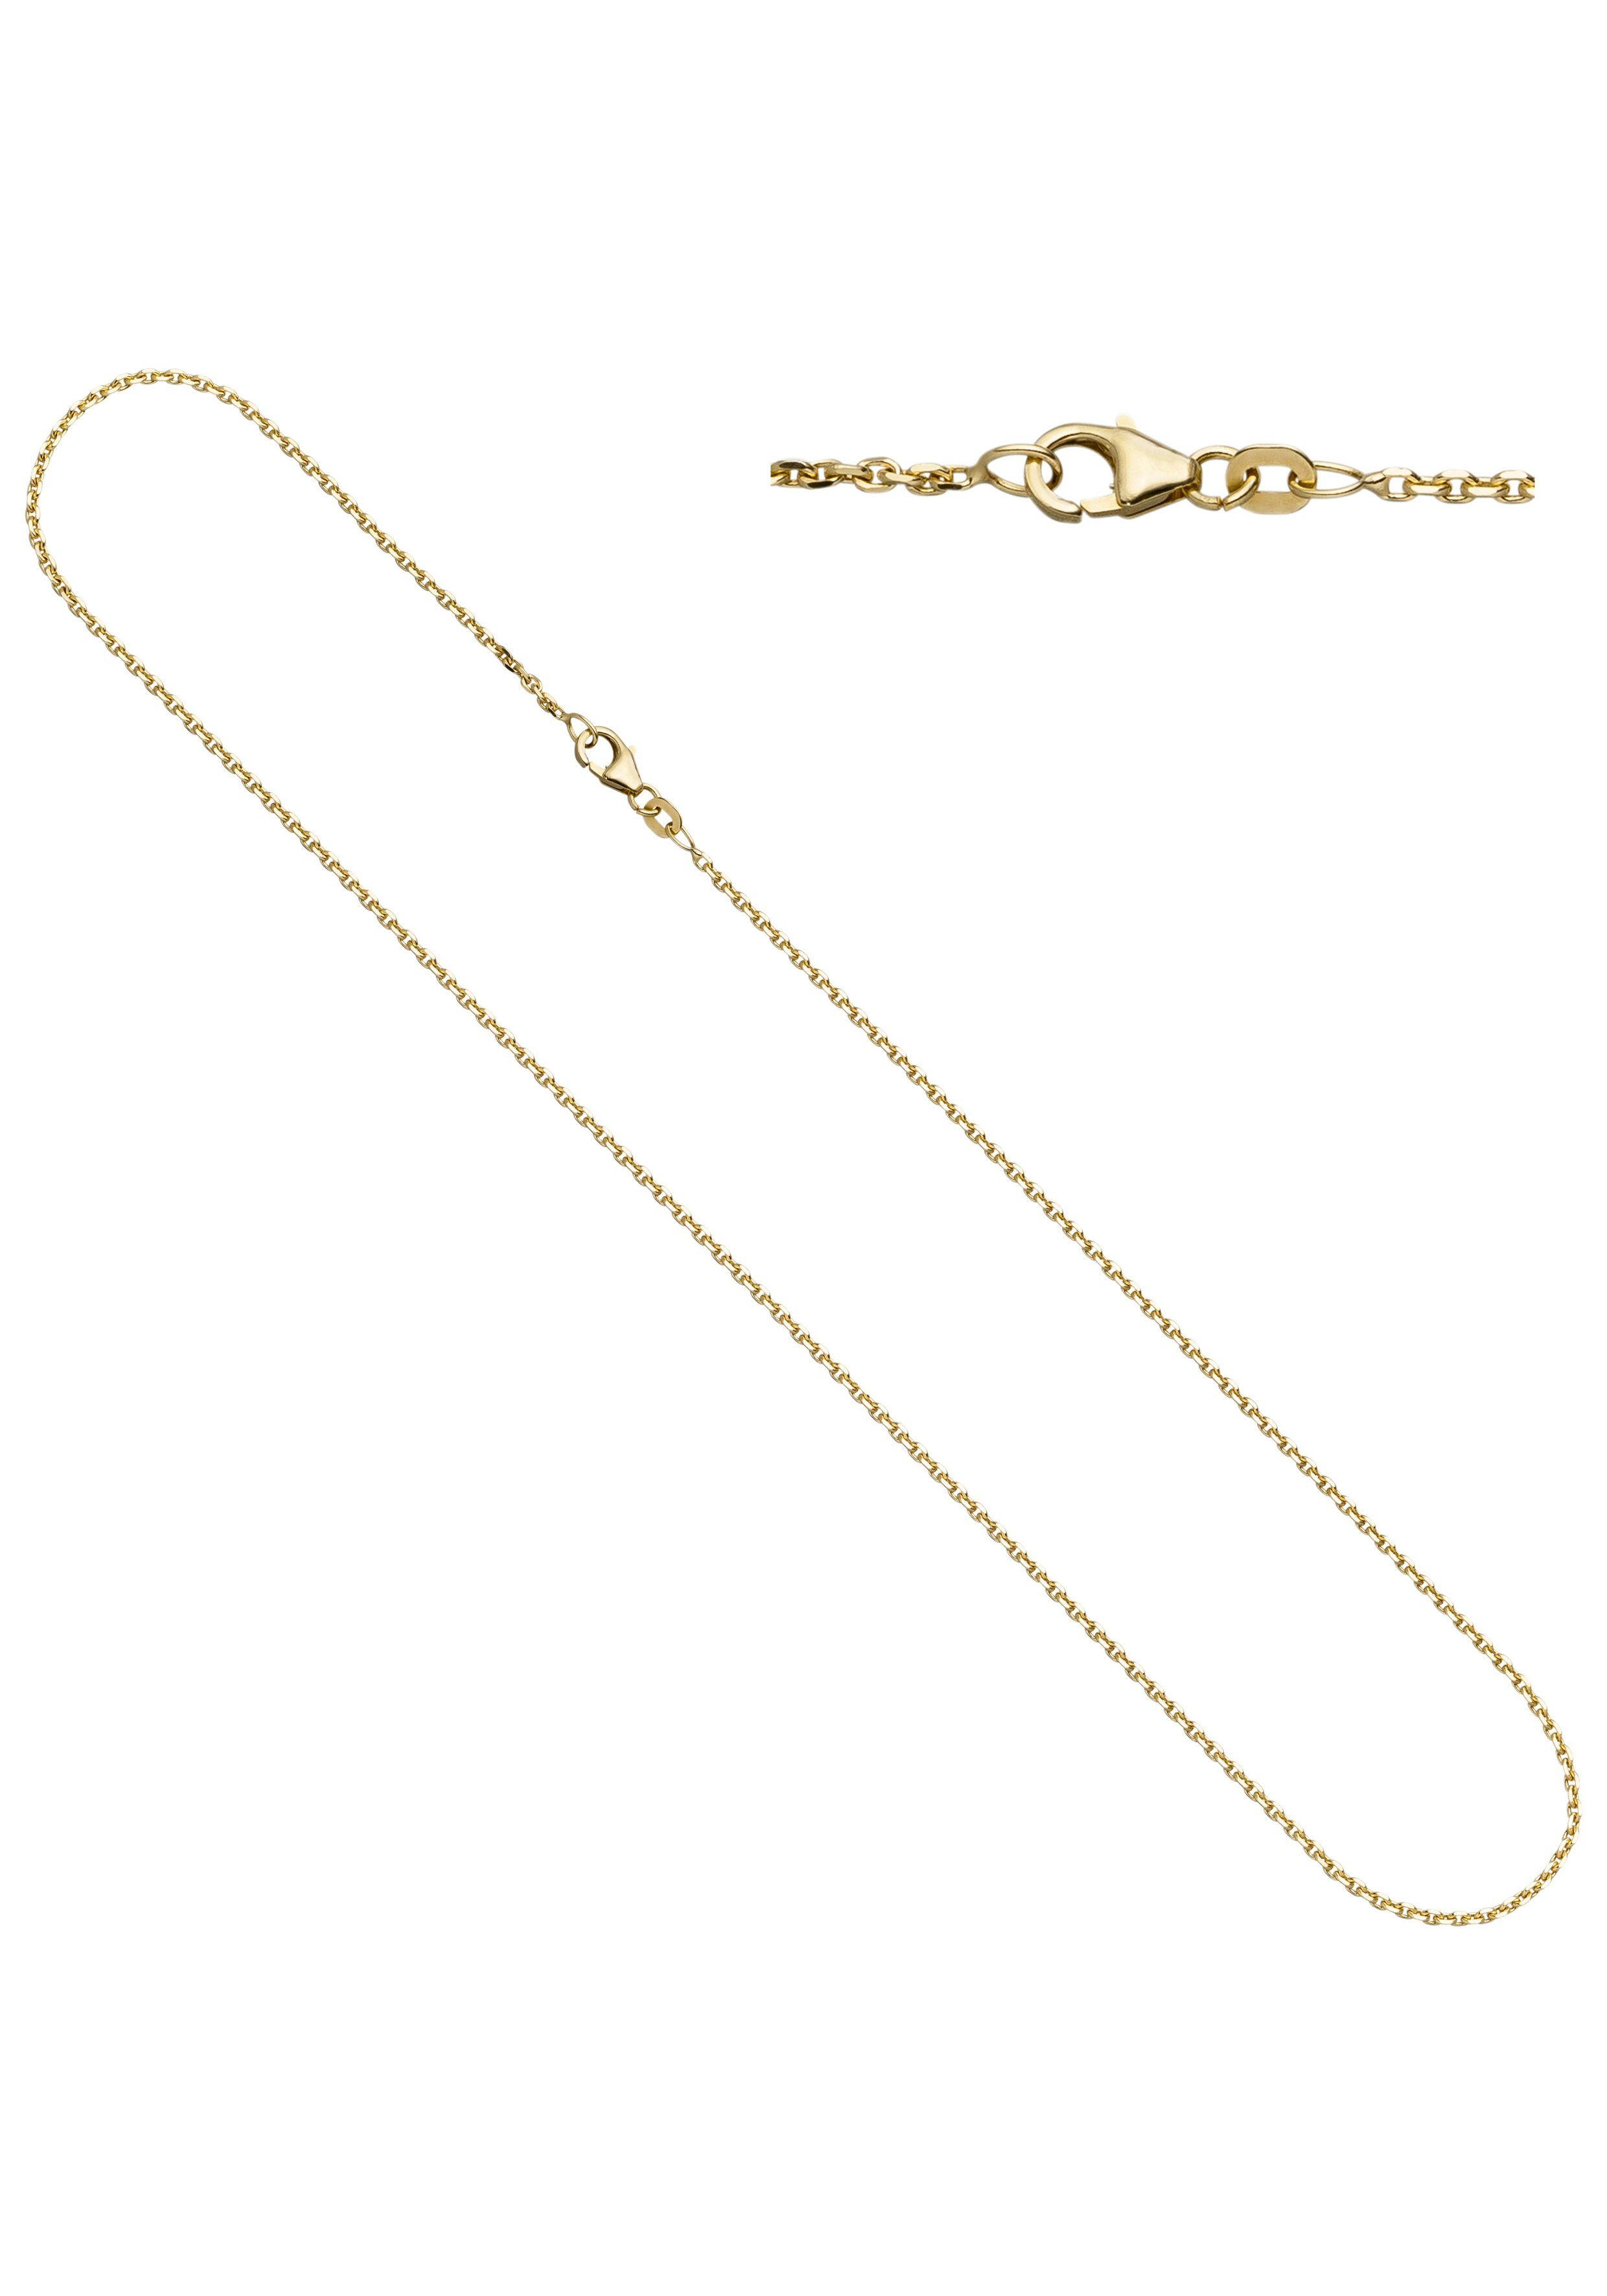 JOBO Goldkette Ankerkette 585 Gold diamantiert 42 cm 1,9 mm